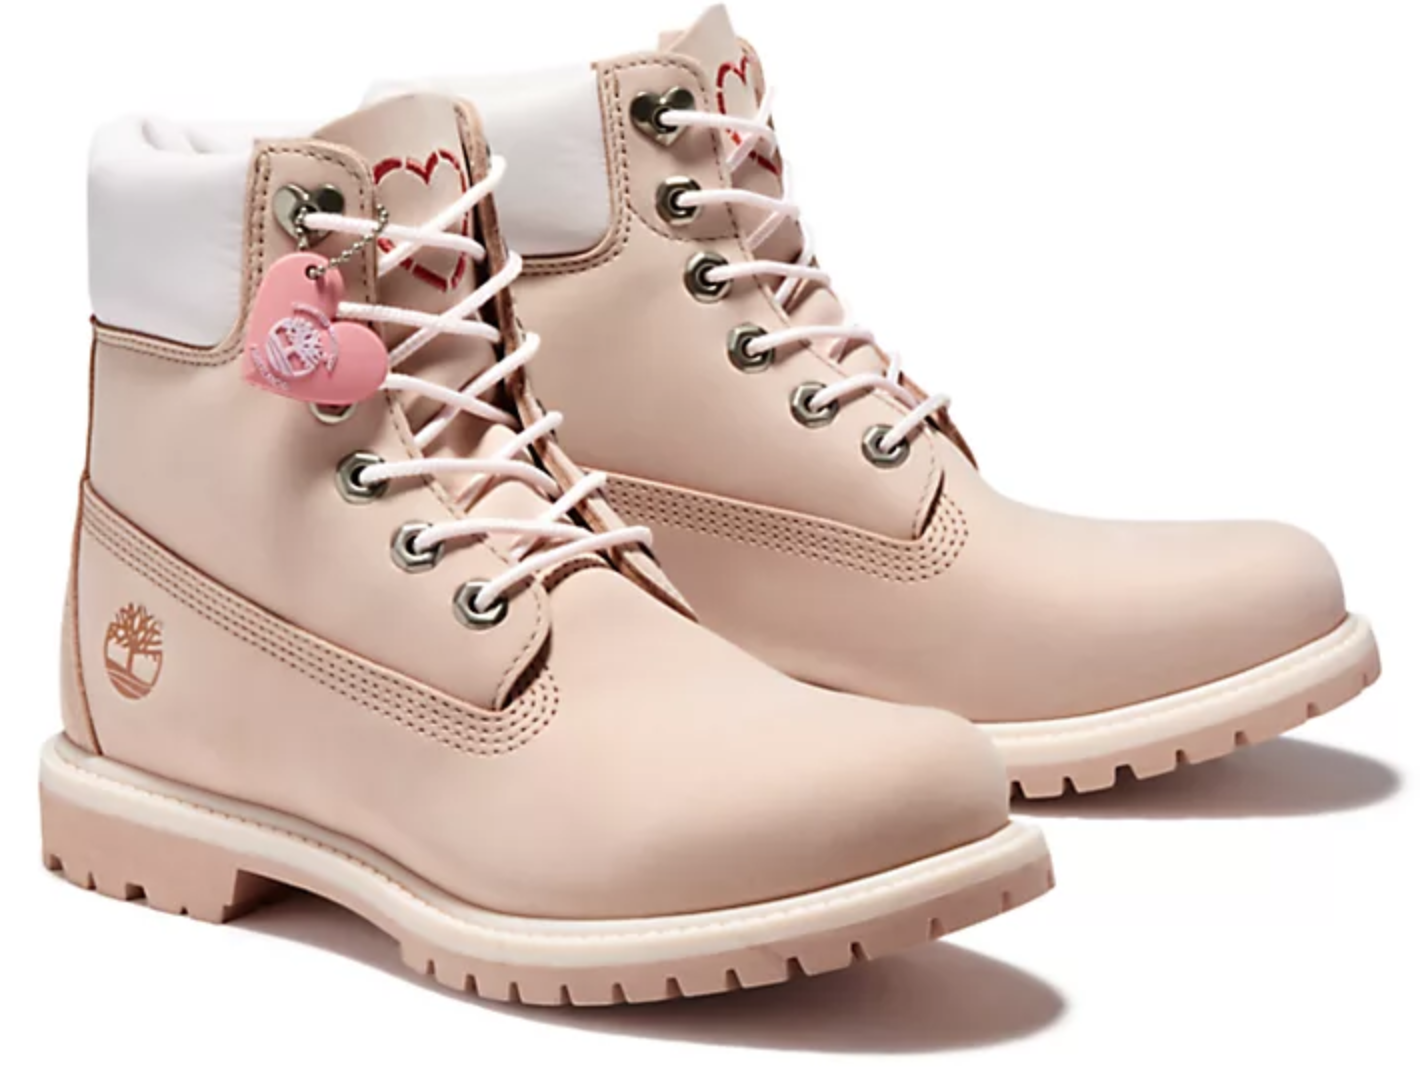 Women S Love Collection 6 Inch Waterproof Boots Timberland Us Store Womens Waterproof Boots Timberland Boots Women Boots